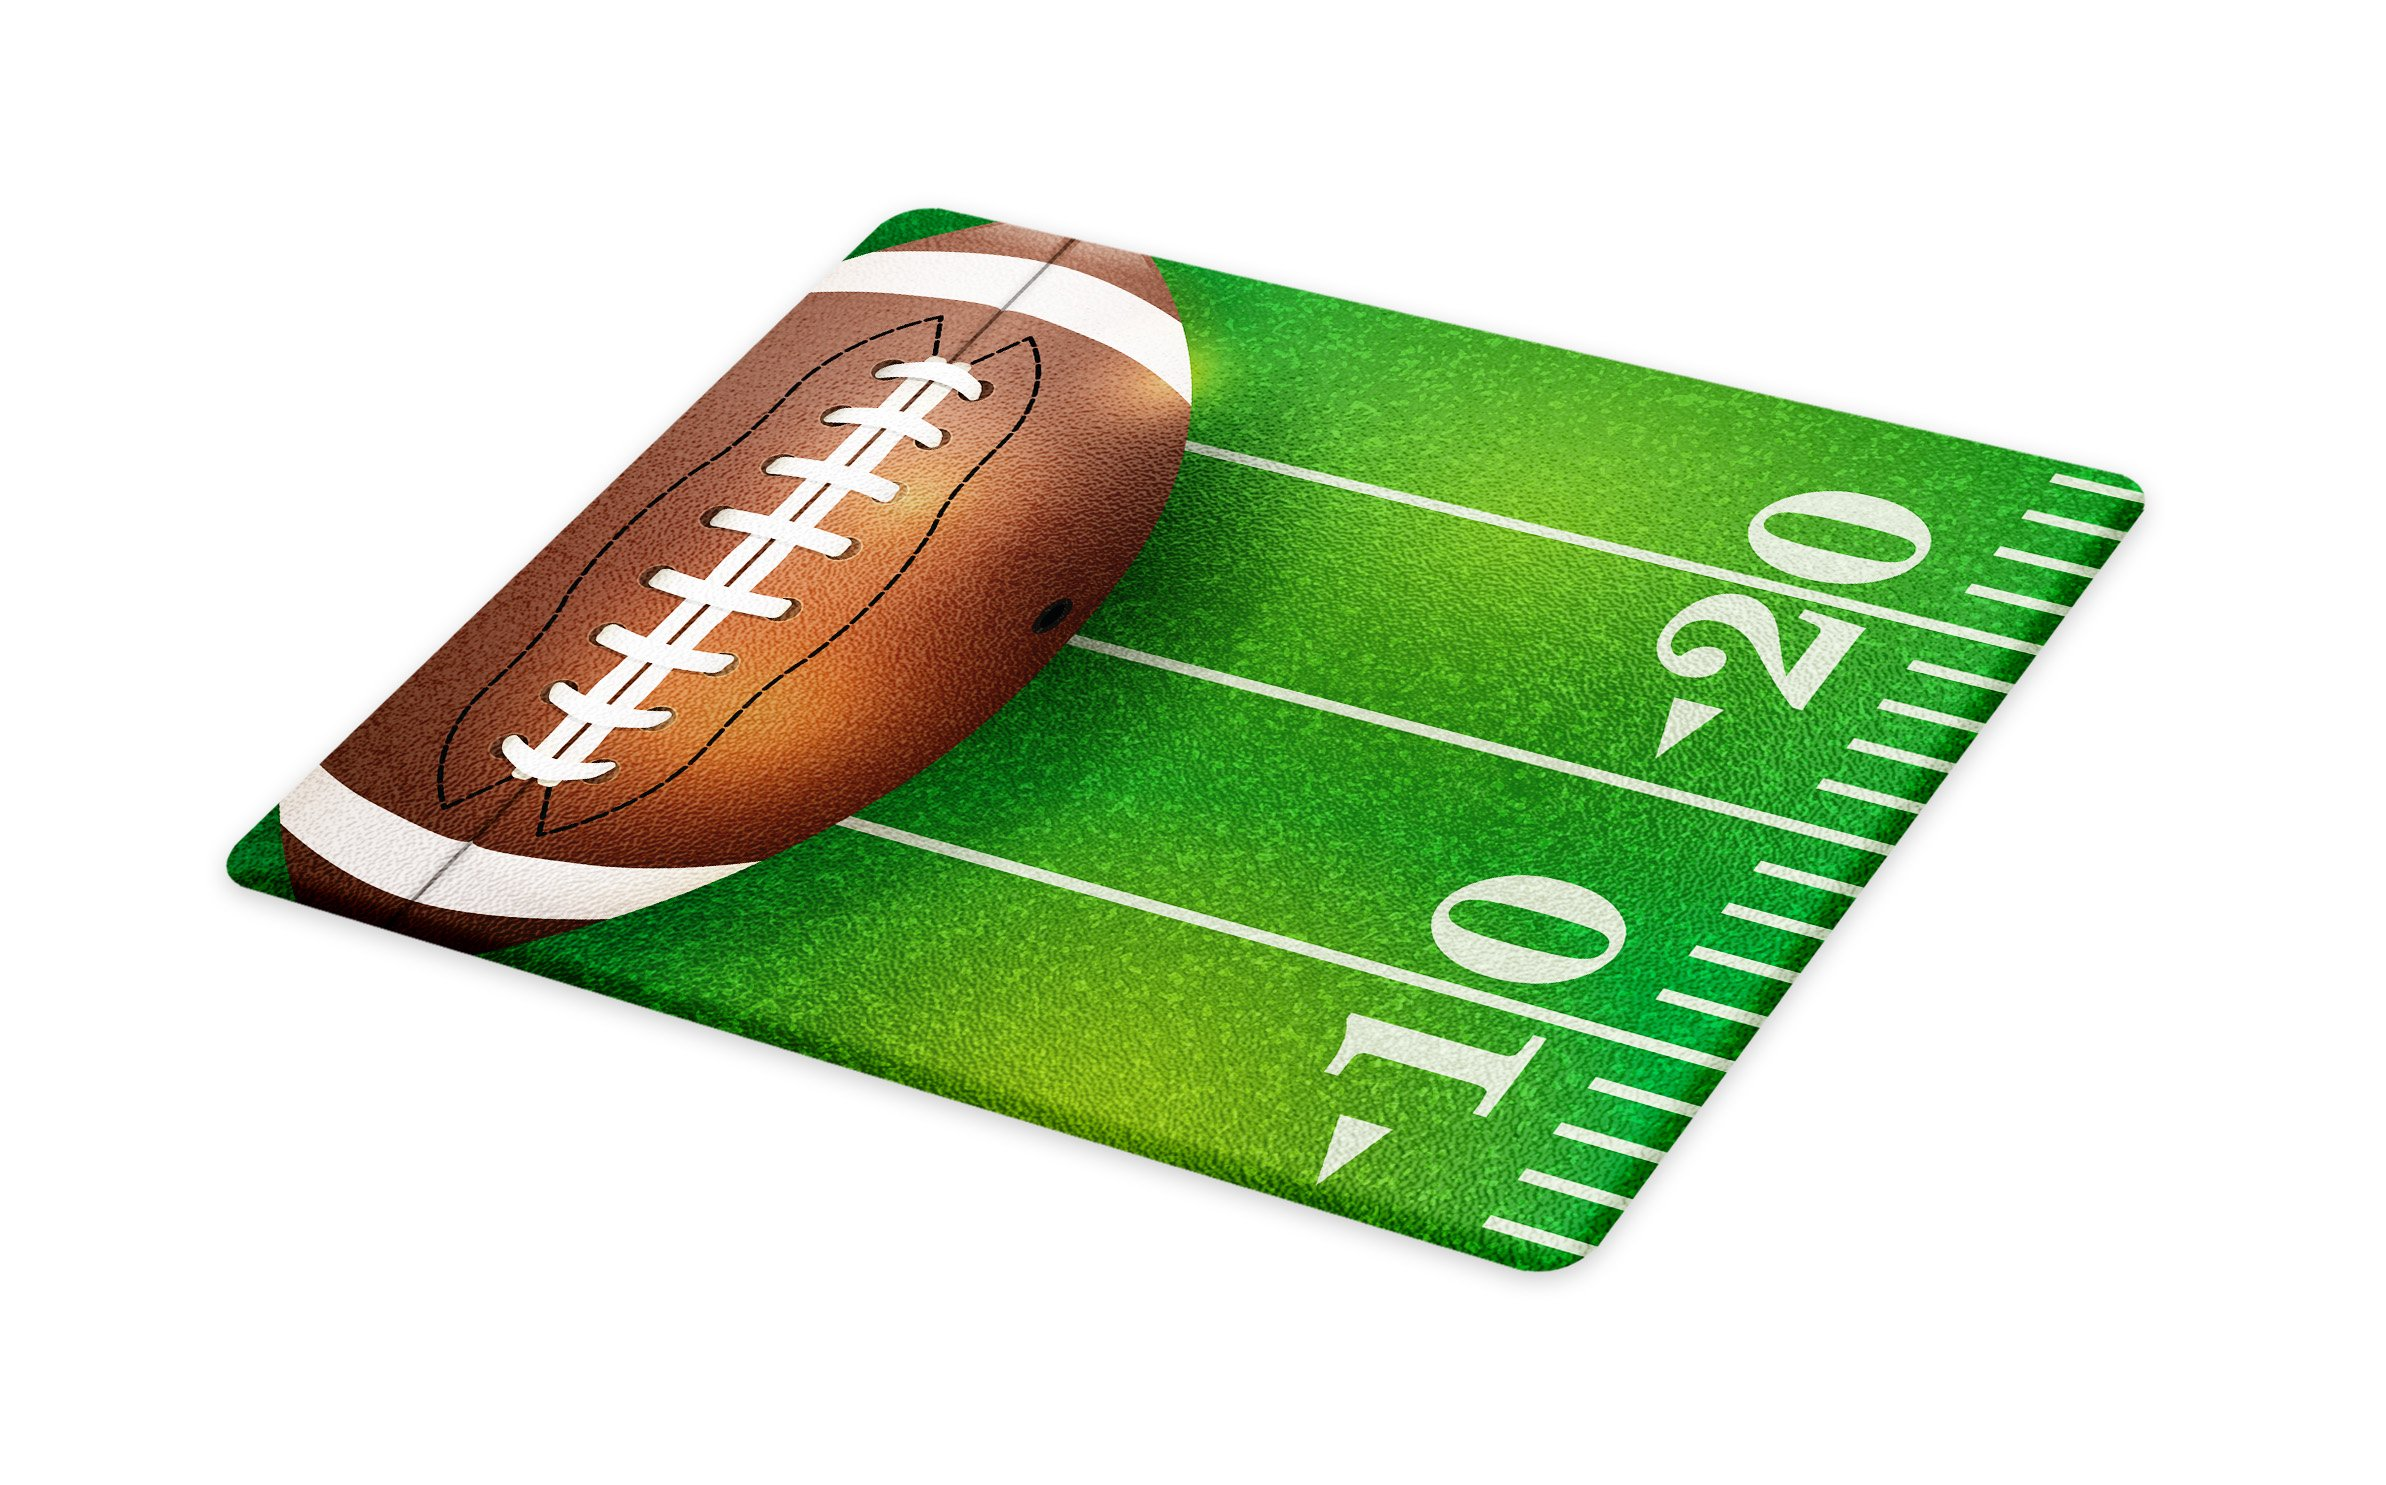 Lunarable Boy's Room Cutting Board, American Football Field and Ball Realistic Vivid Illustration College, Decorative Tempered Glass Cutting and Serving Board, Large Size, Green Brown White